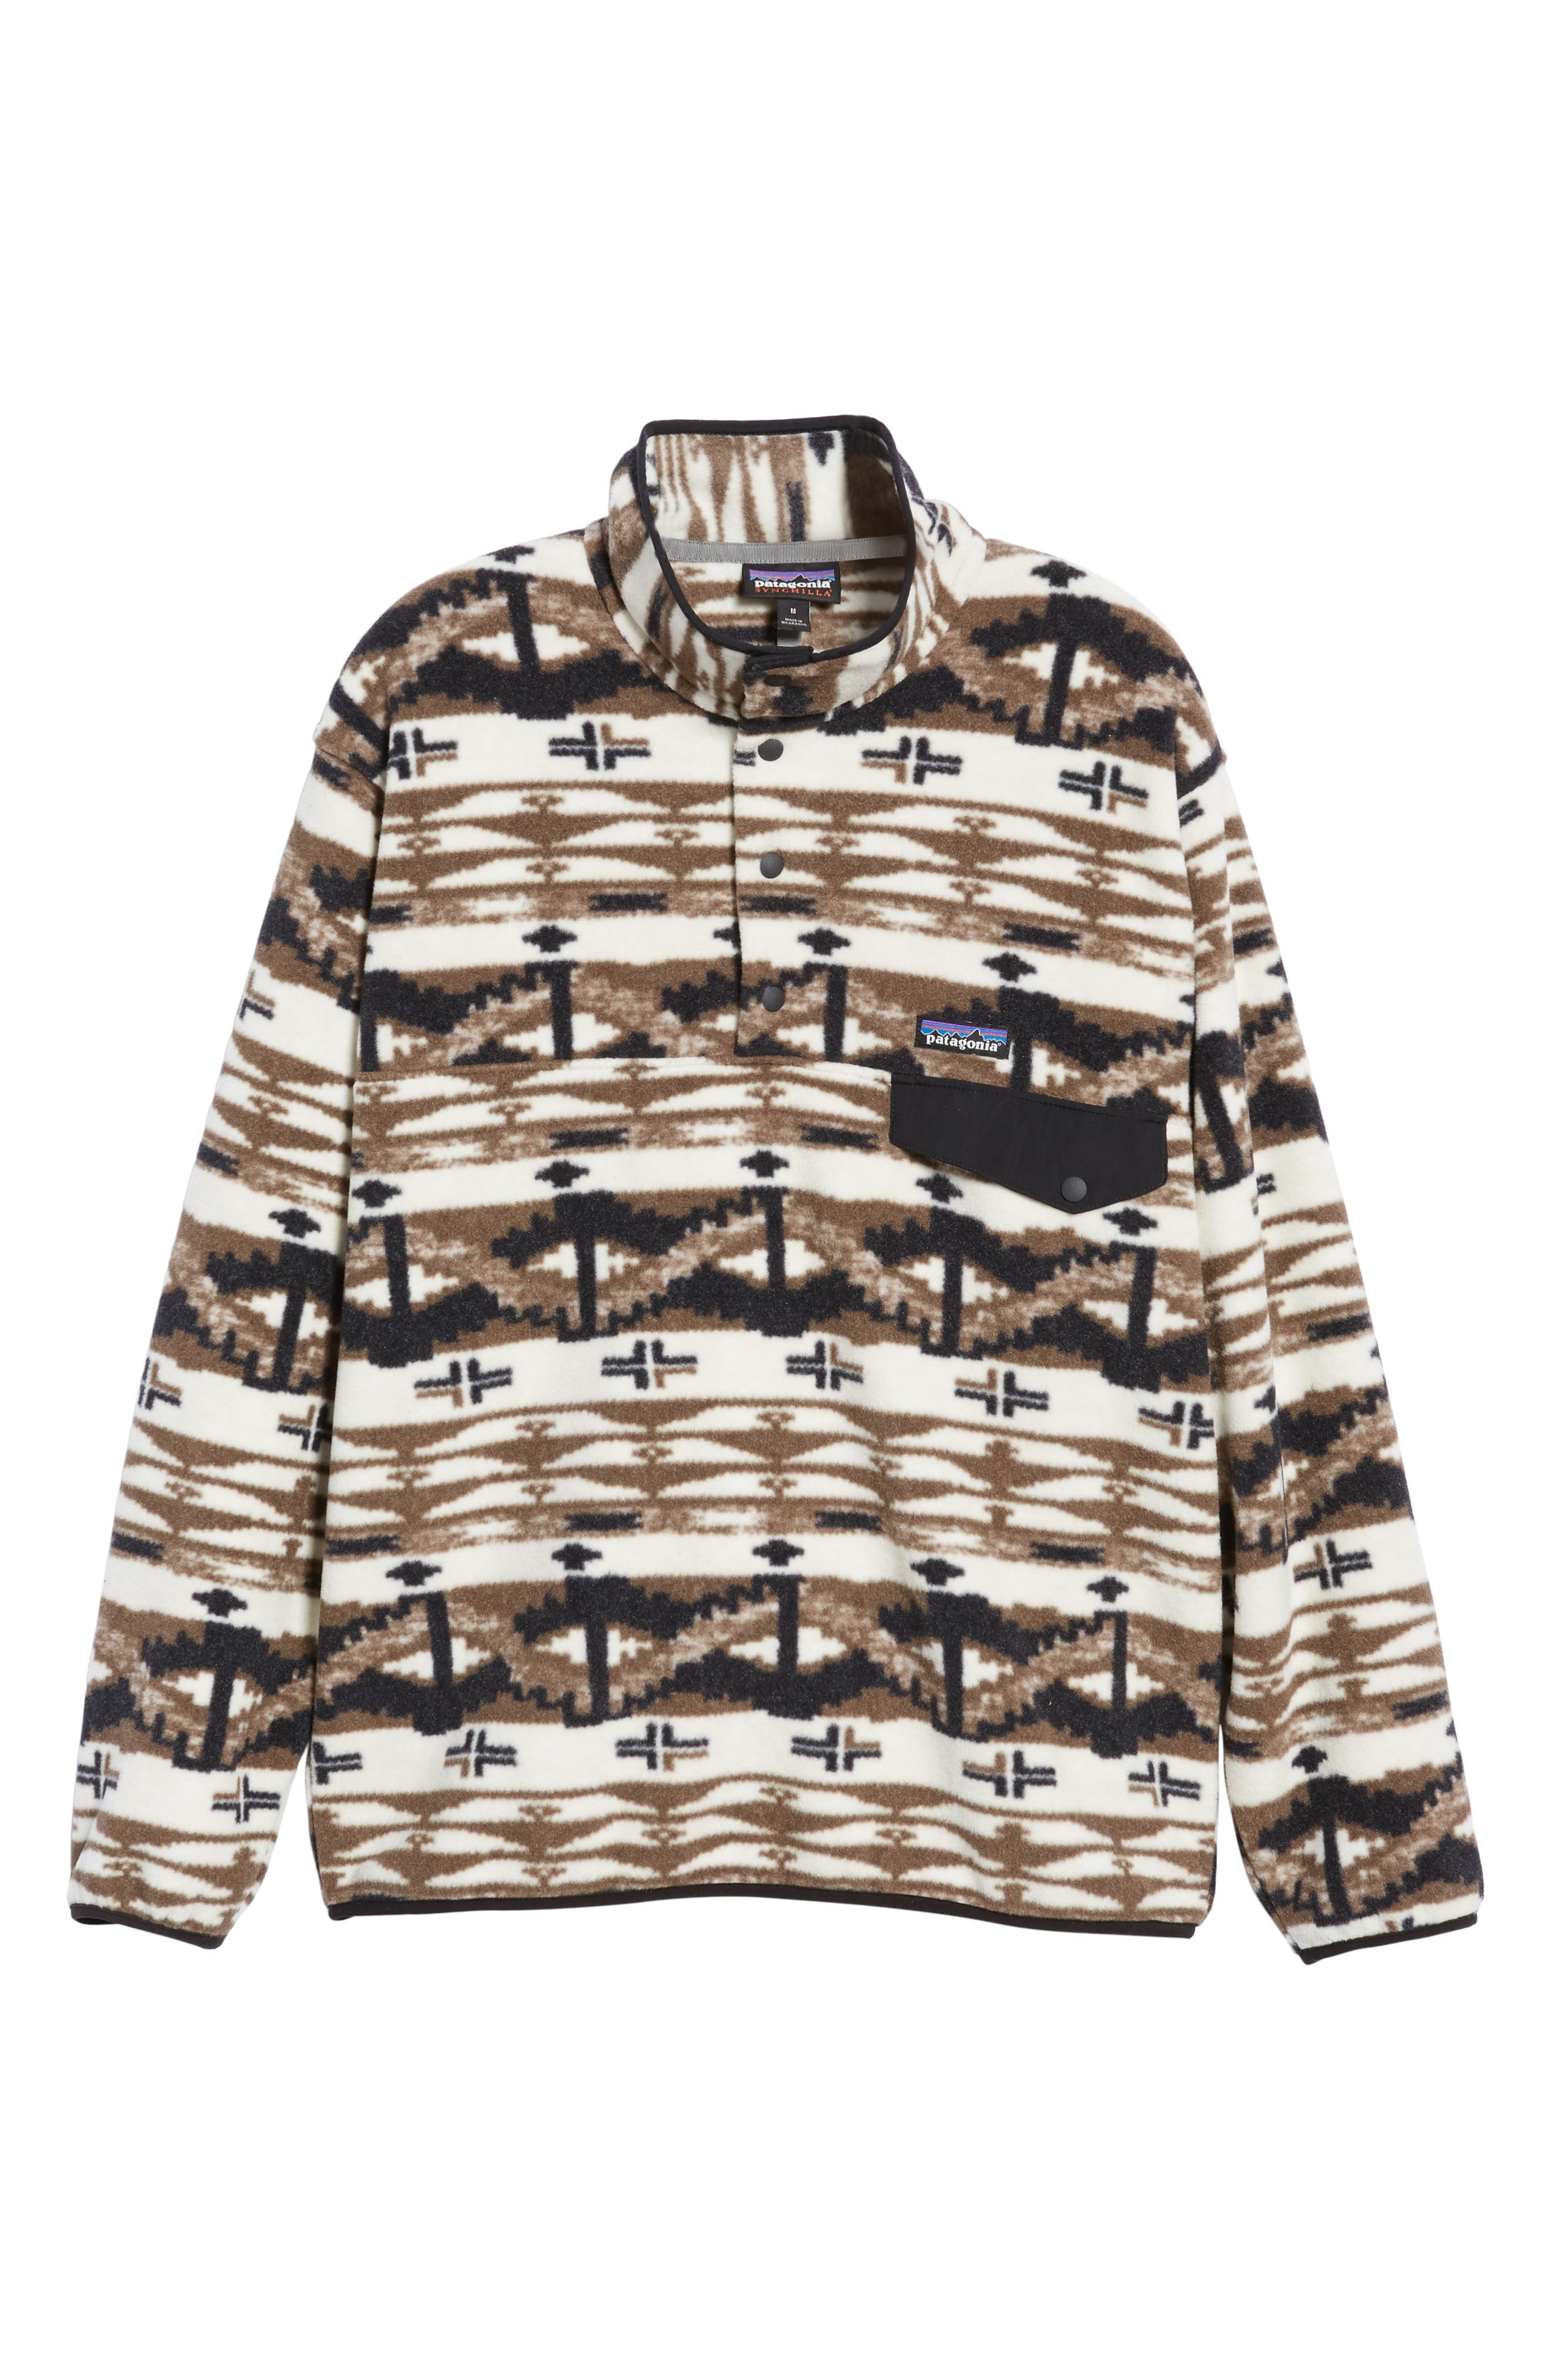 Synchilla<sup>®</sup> Snap-T<sup>®</sup> Pullover,                             Alternate thumbnail 6, color,                             SHEPHERD KNIT/ BIRCH WHITE